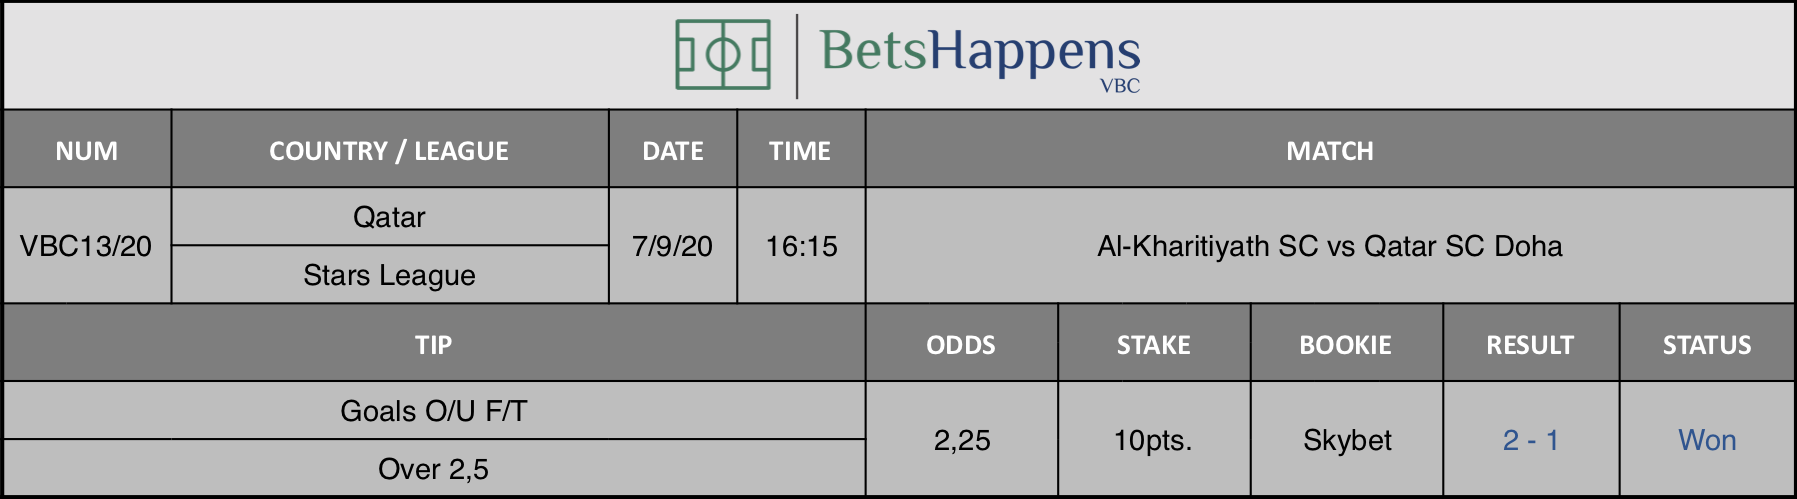 Results of our advice for the match Al-Kharitiyath SC vs Qatar SC Doha in which Goals O / U F / T Over 2,5 is recommended.